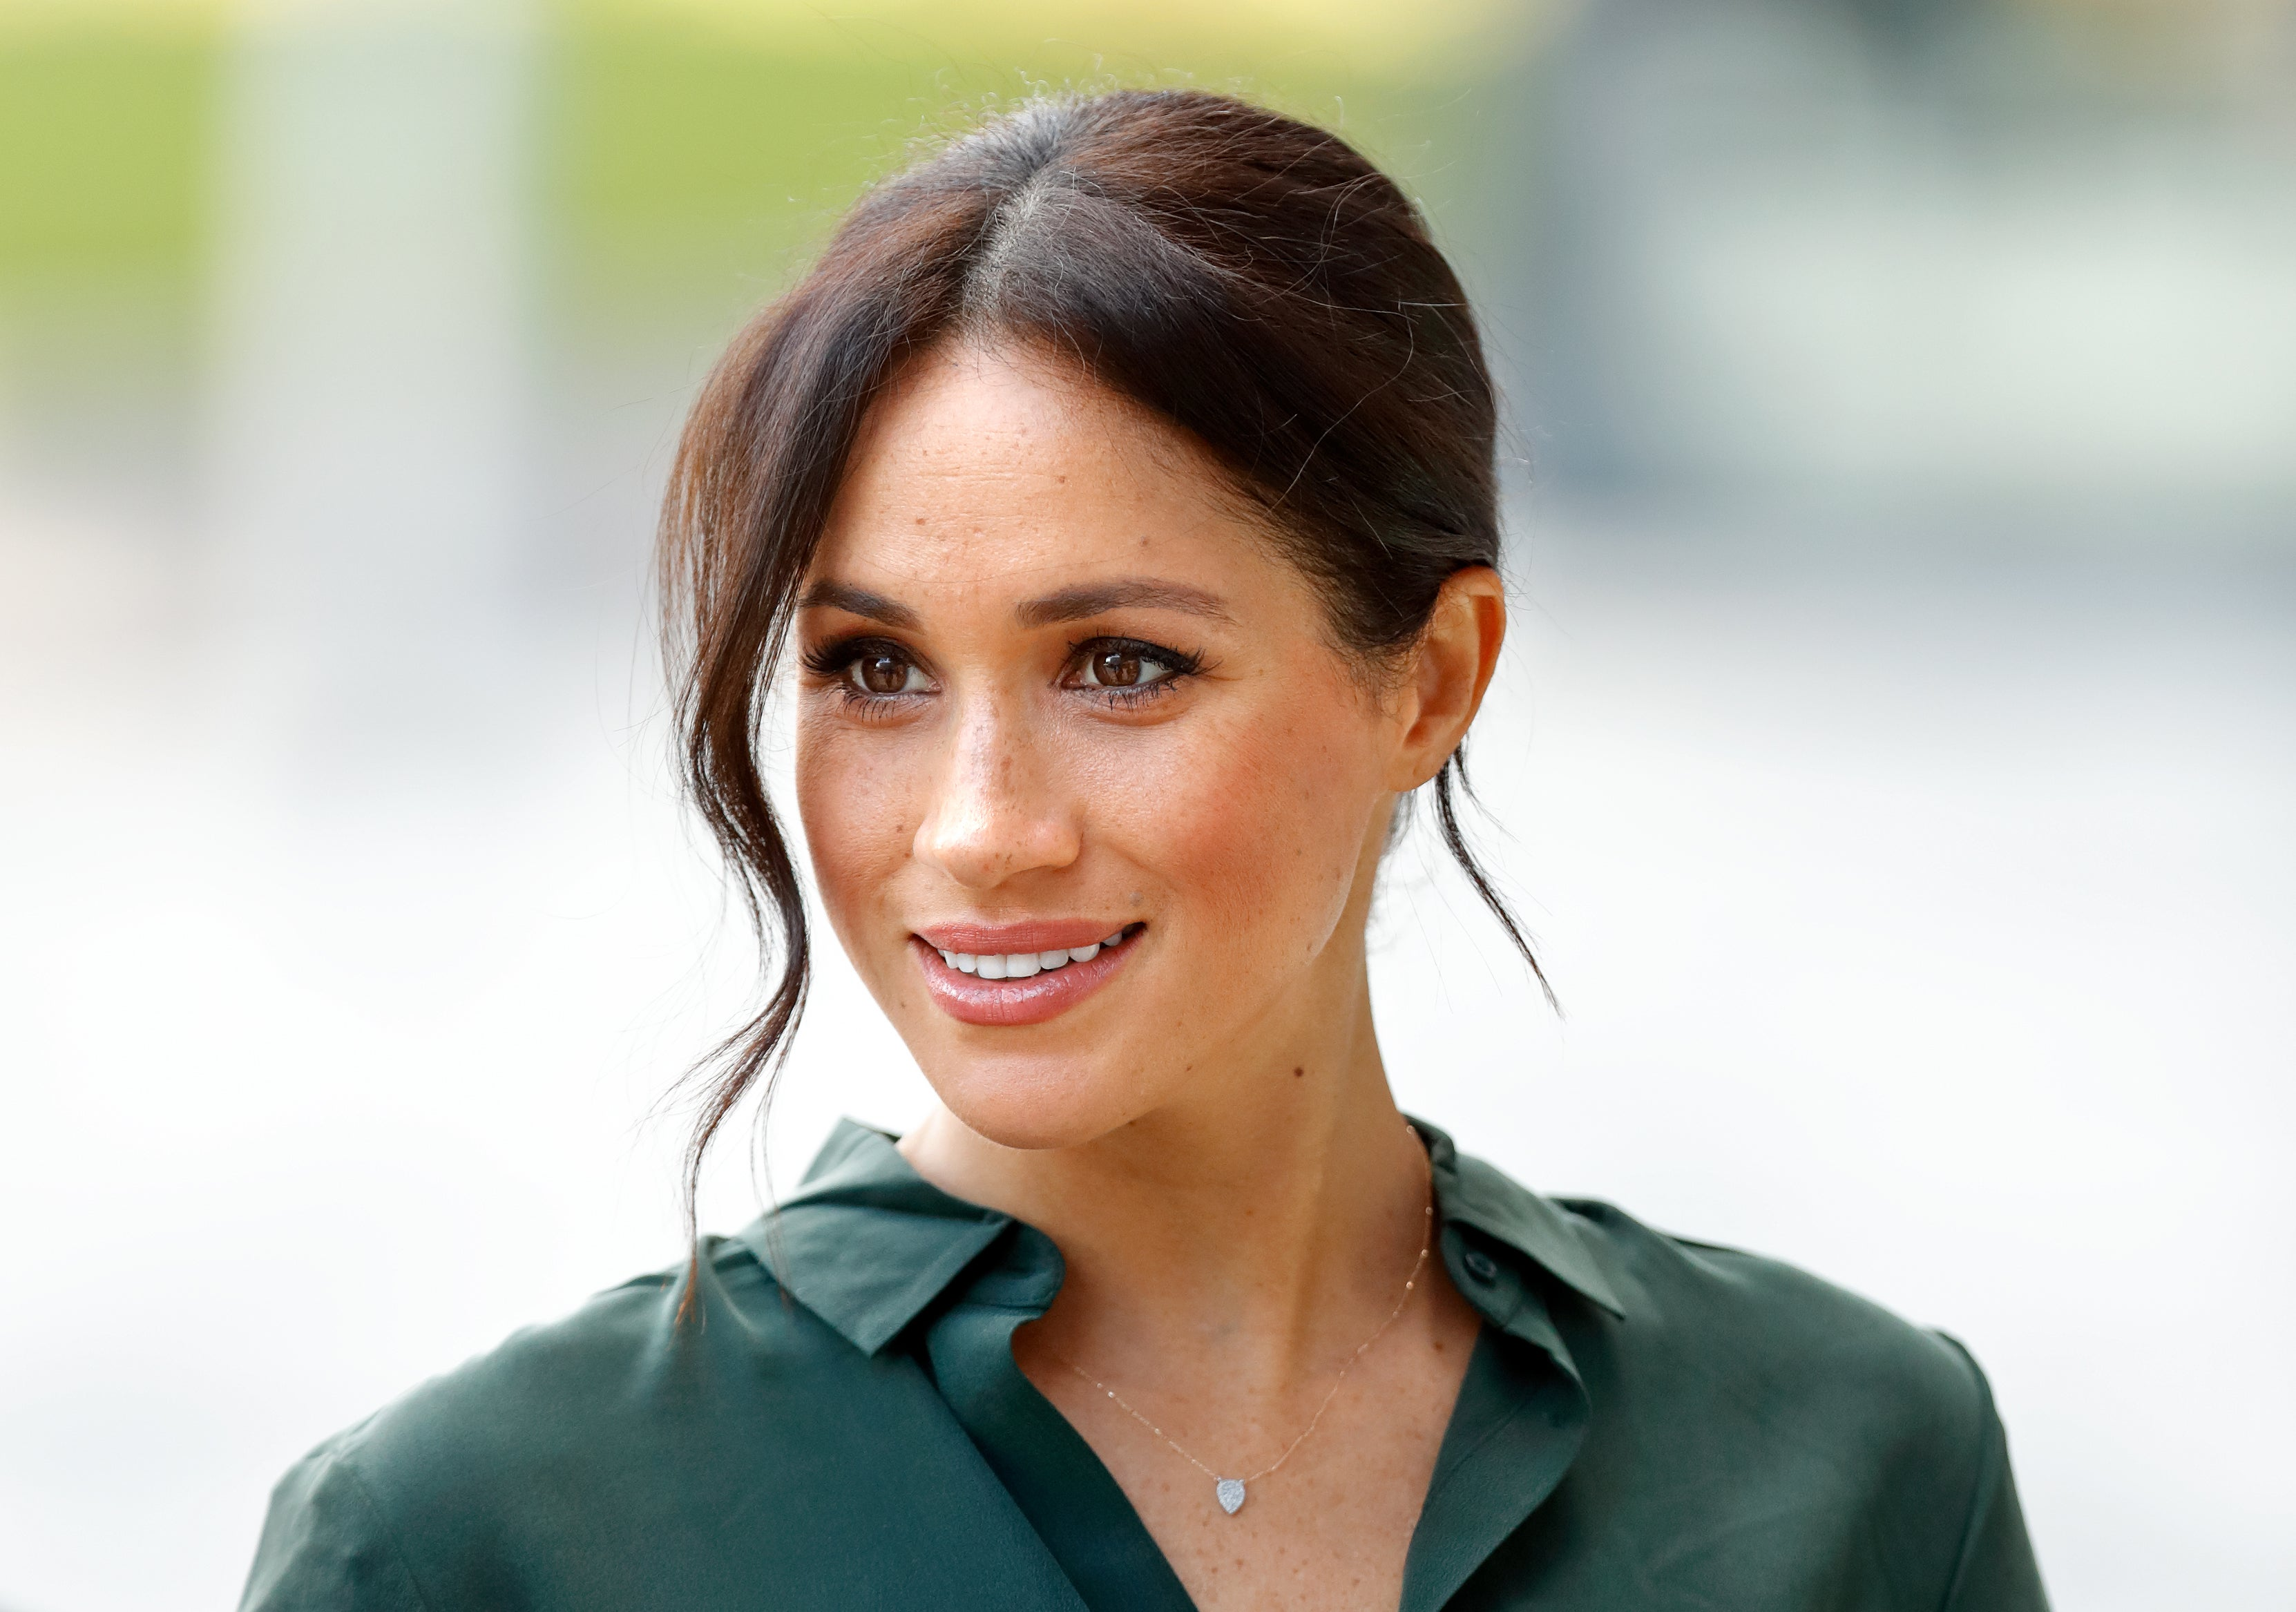 Meghan Markle S Favorite Makeup Beauty Skincare And Hair Products Entertainment Tonight